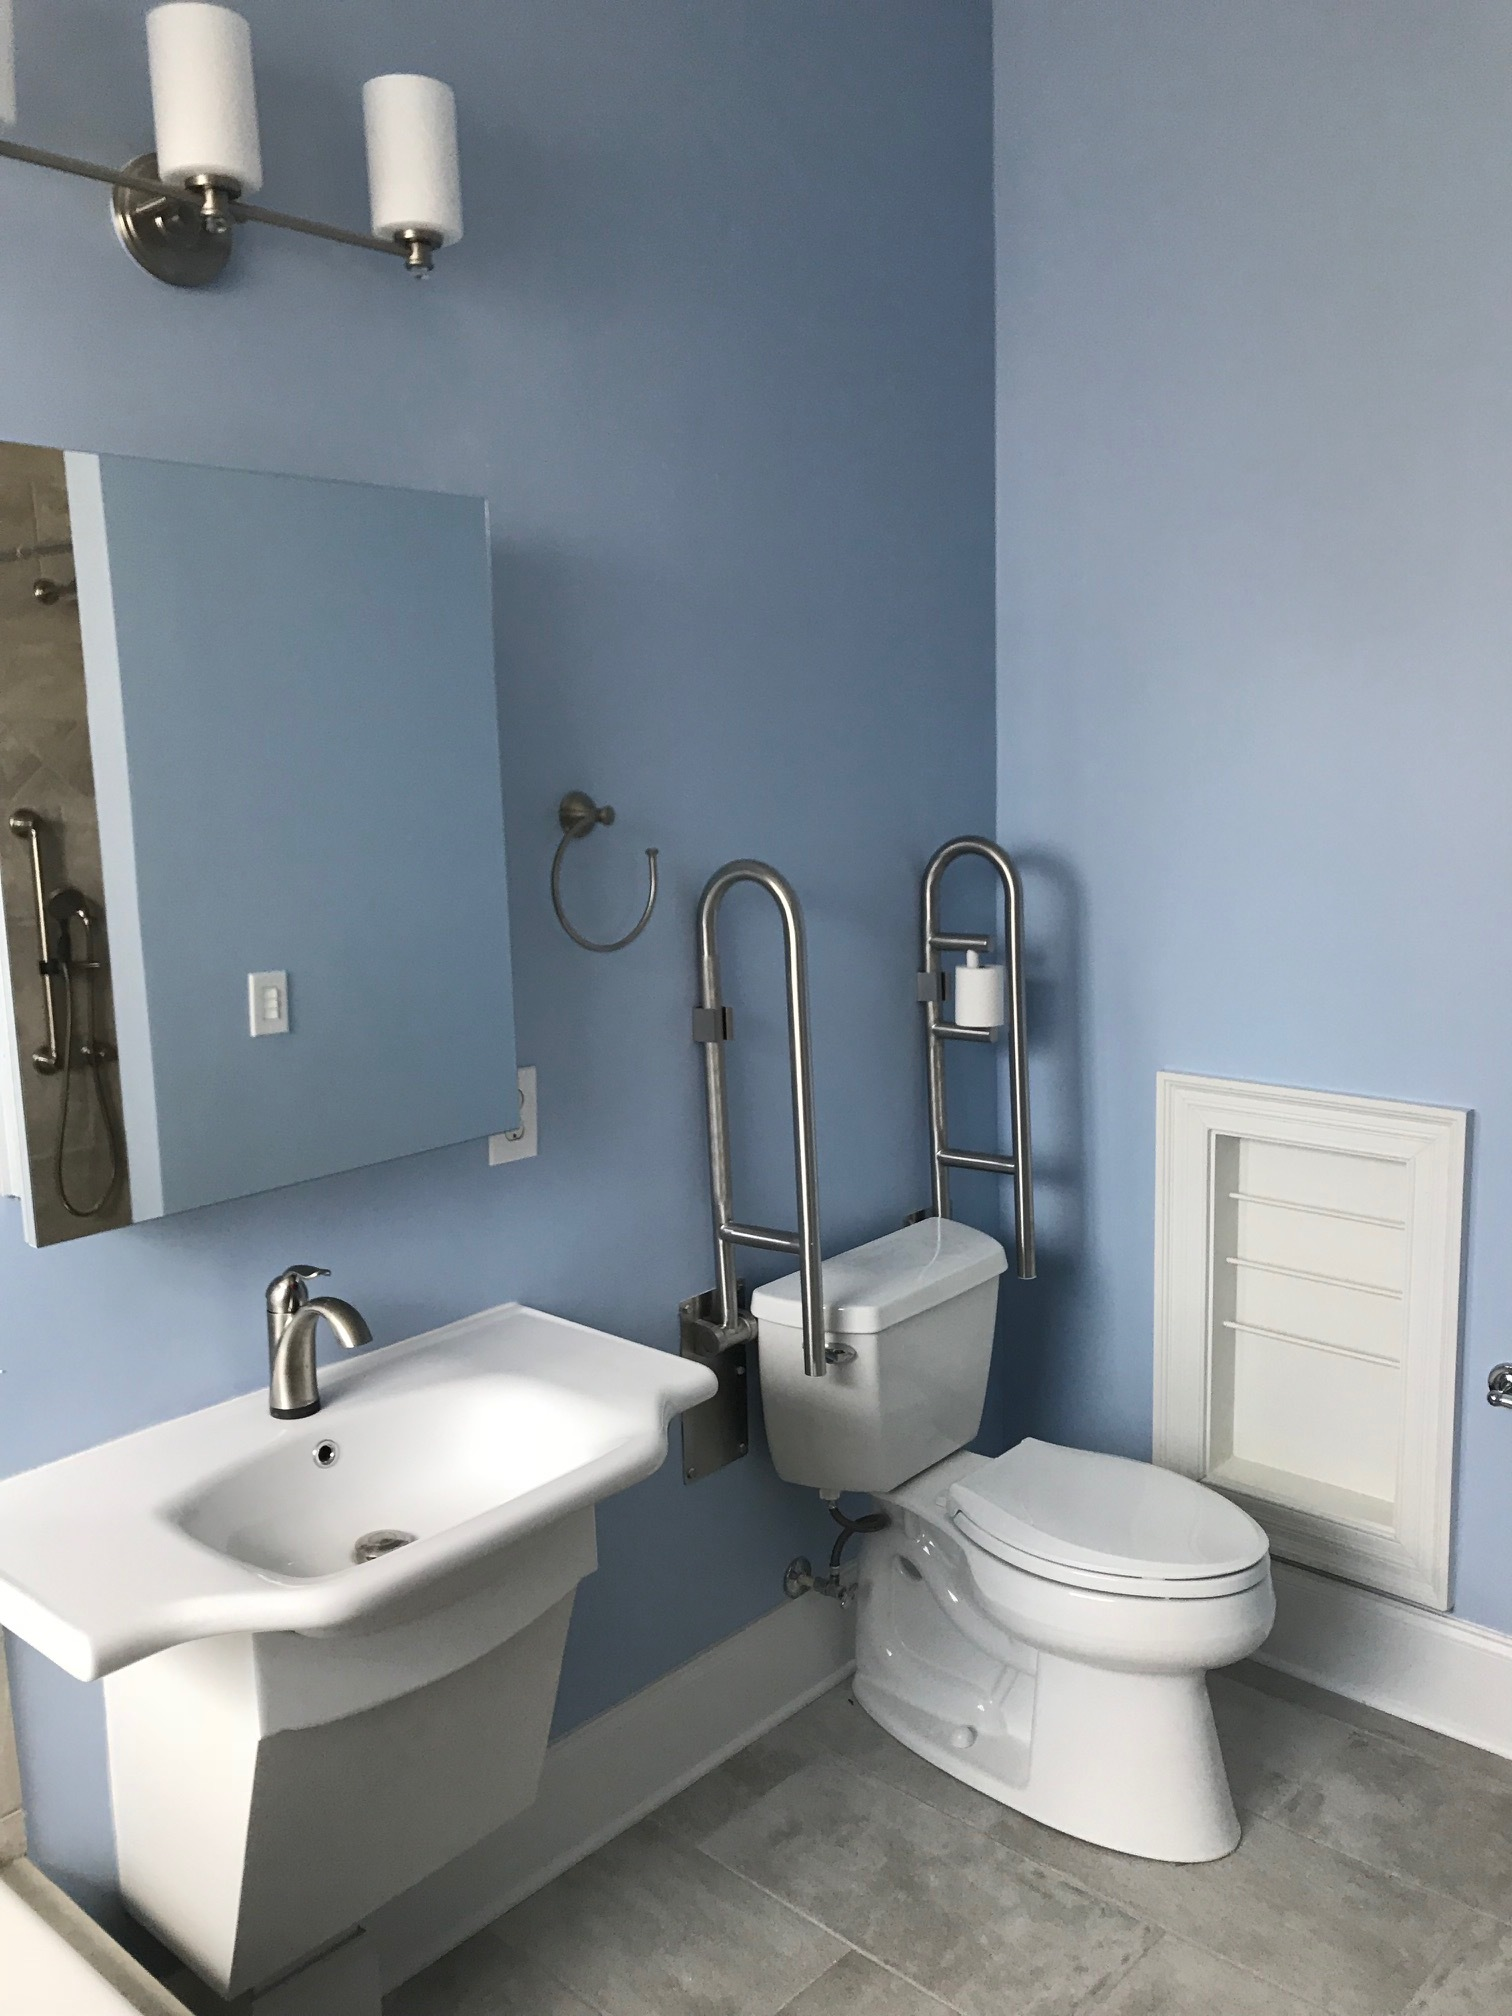 Handicap Sink and toilet area